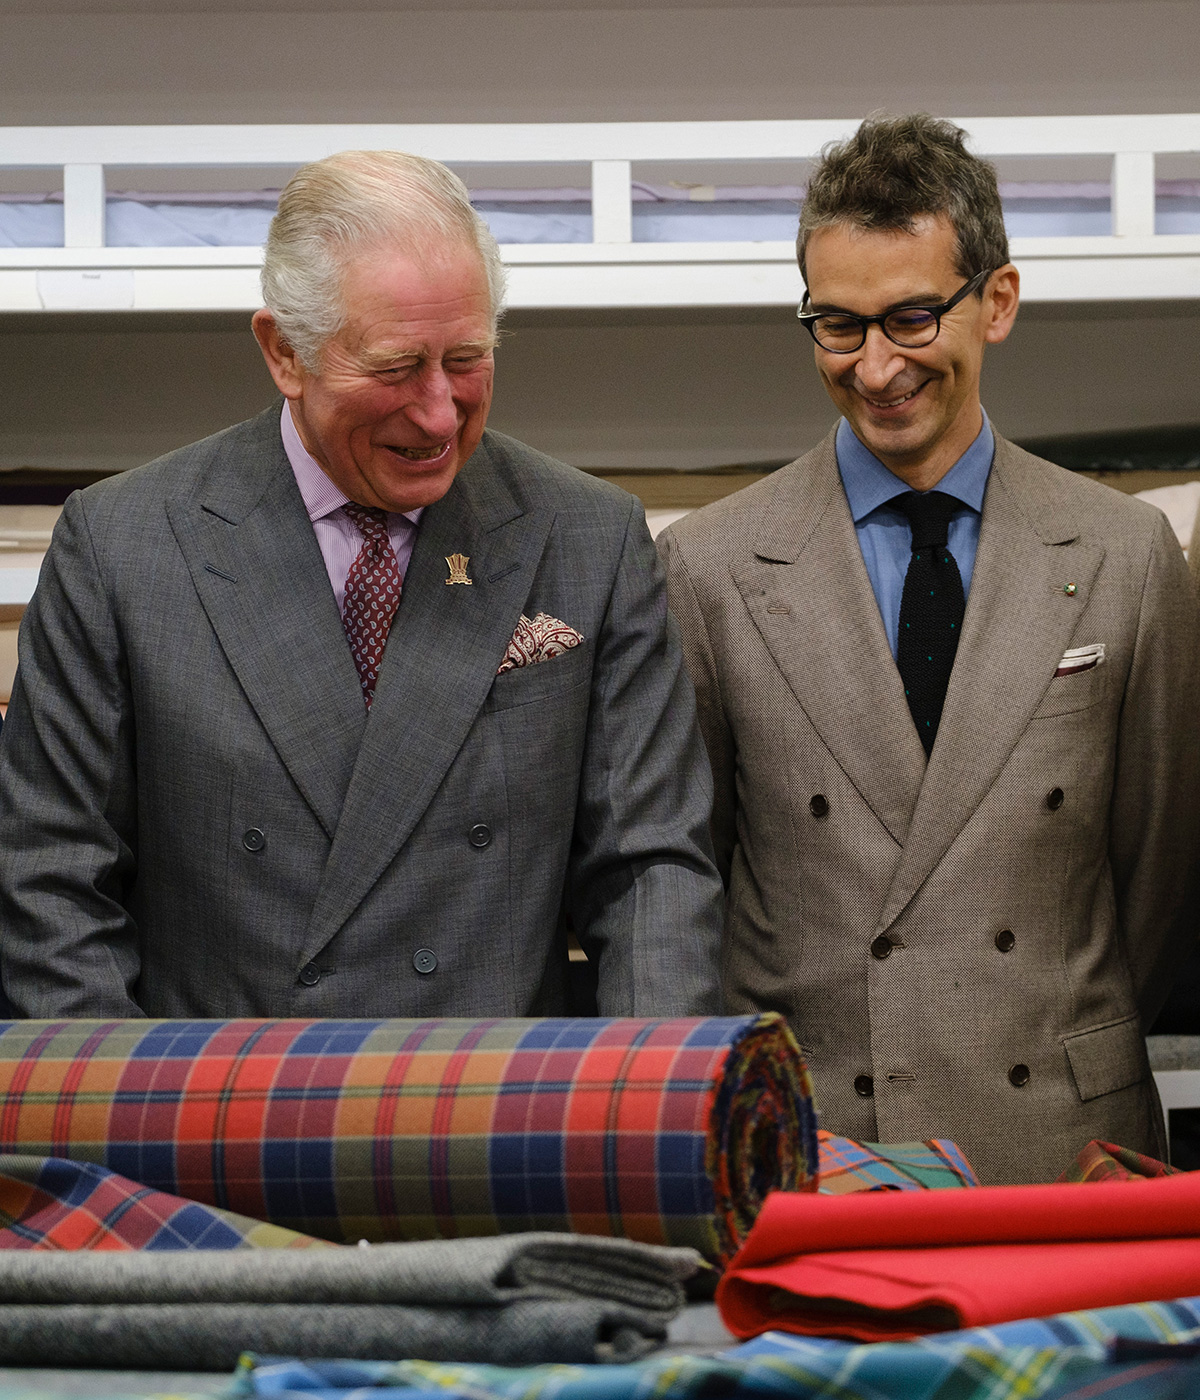 Portrait of HRH The Prince of Wales, Yoox Net-a-porter Group's chairmain and CEO Federico Marchetti.